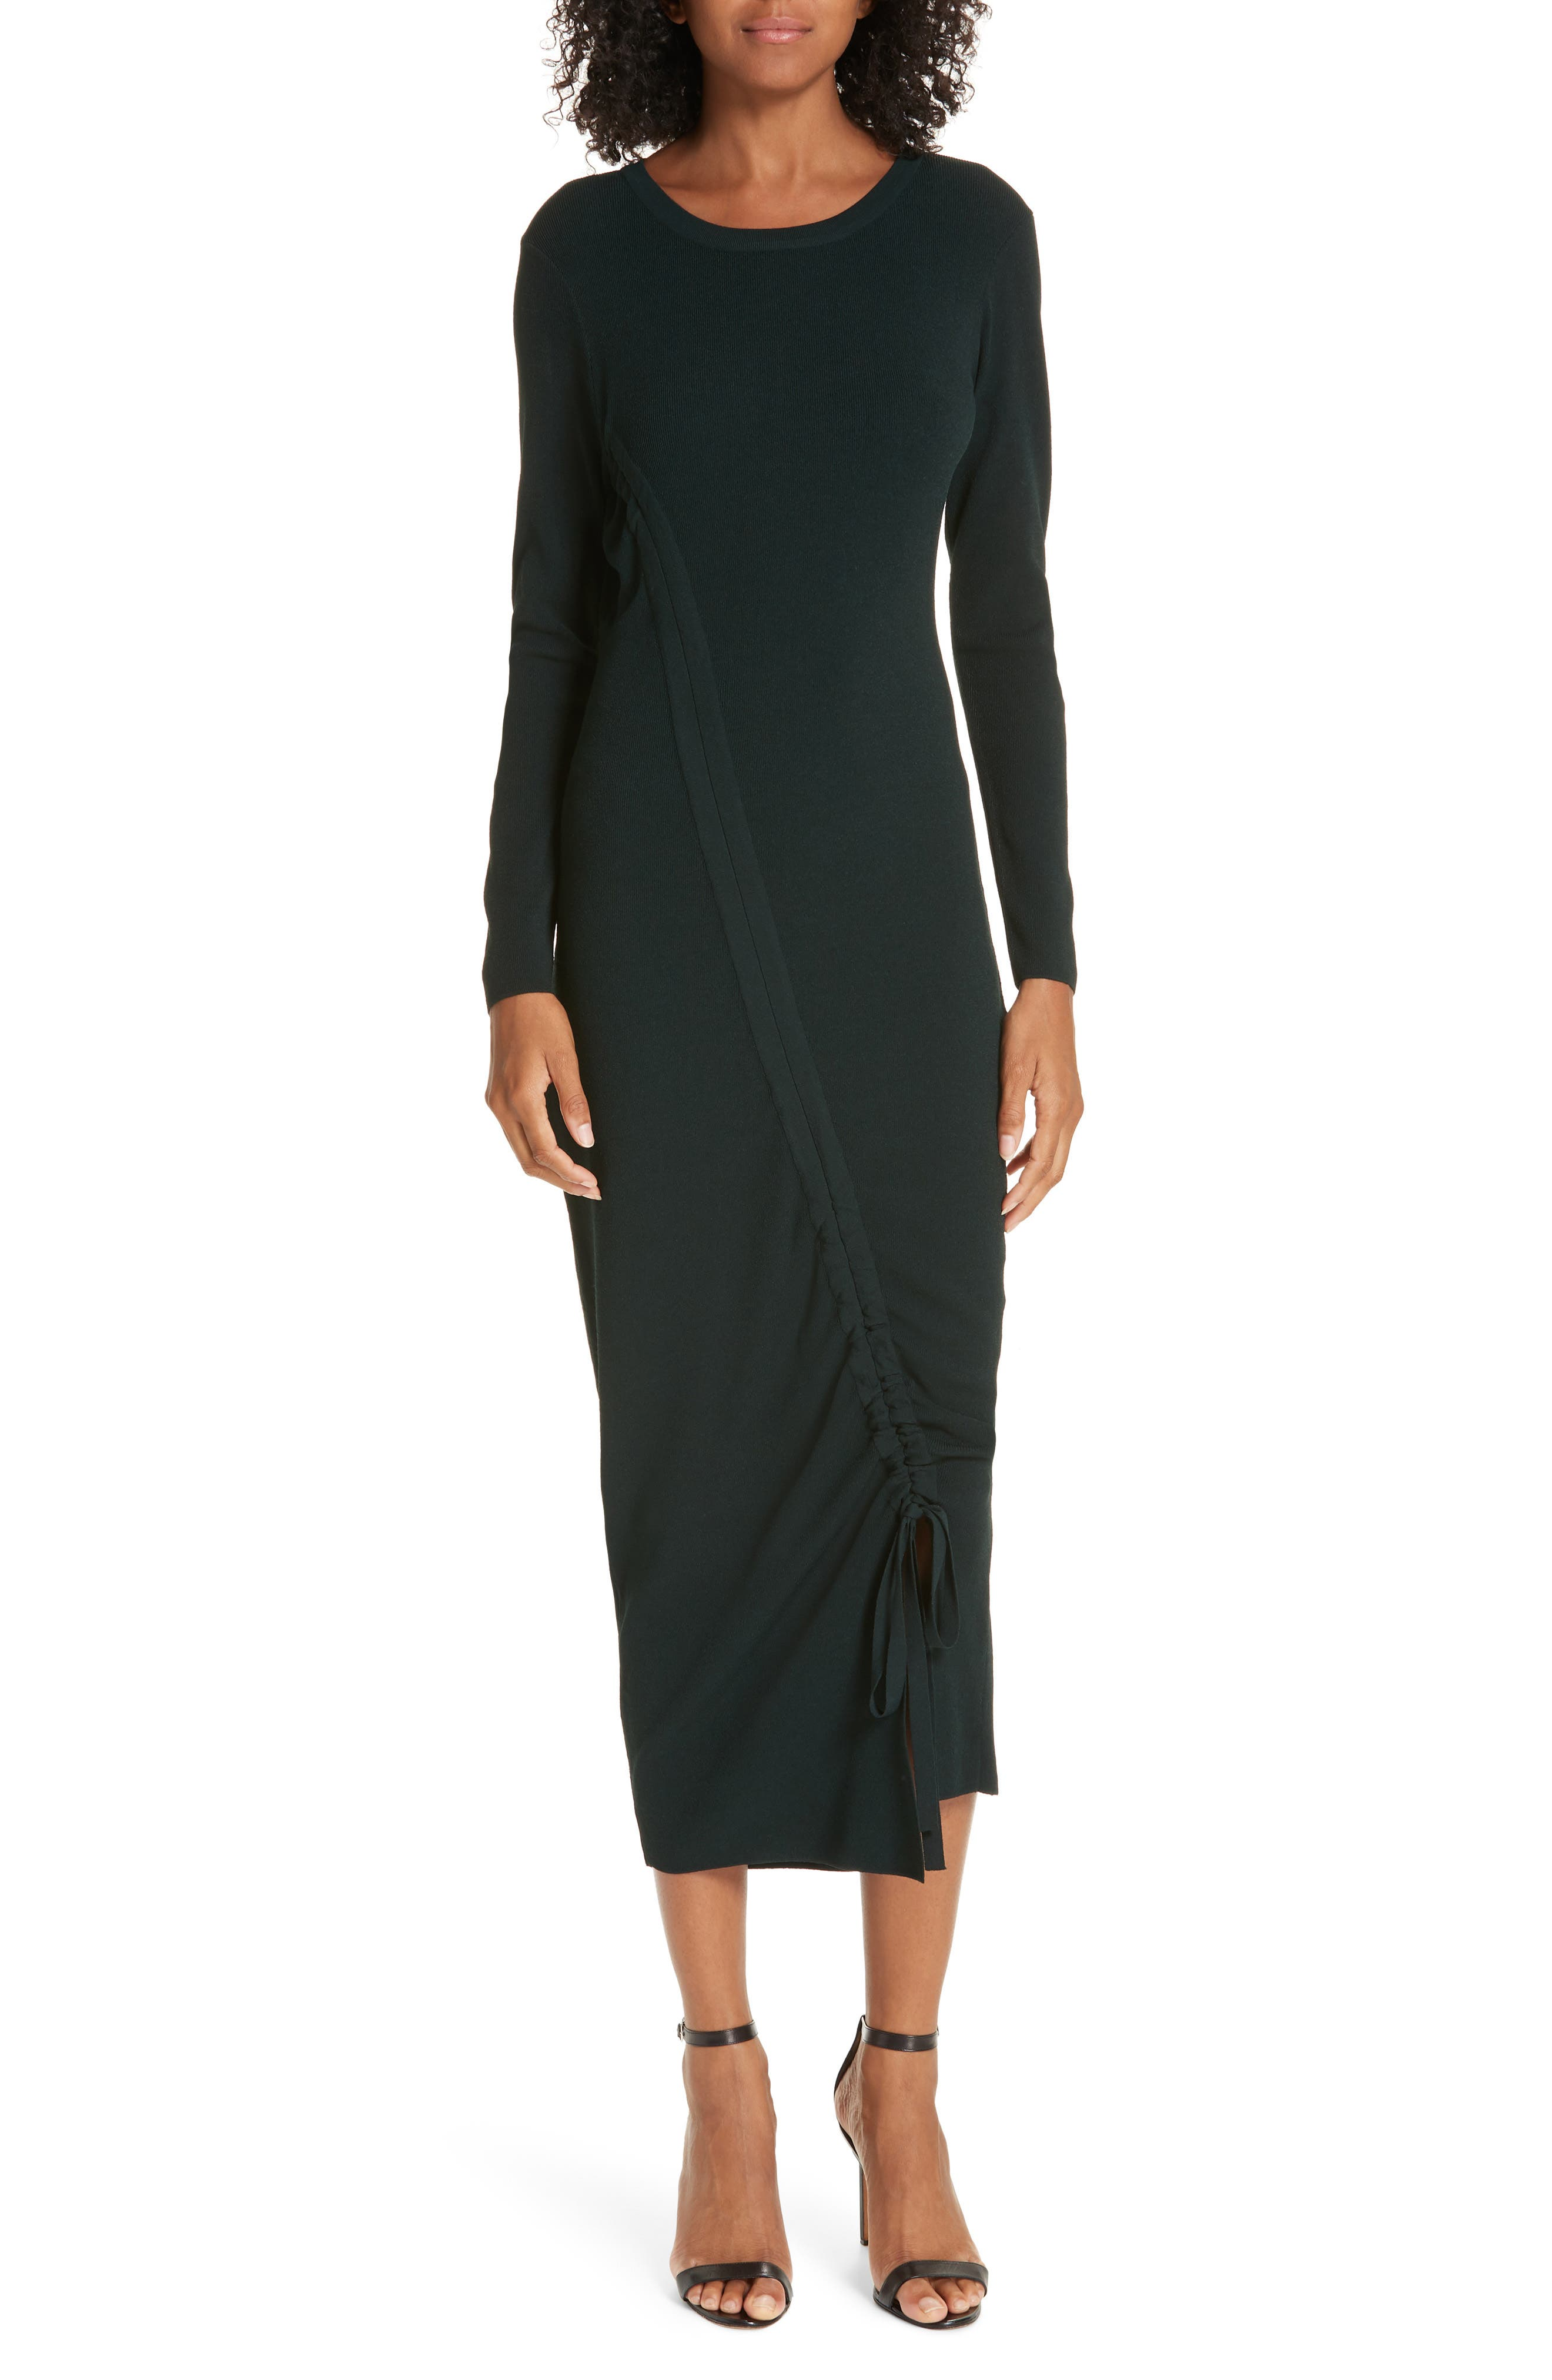 Milly Diagonal Ruched Tunnel Dress, Size Petite - Green